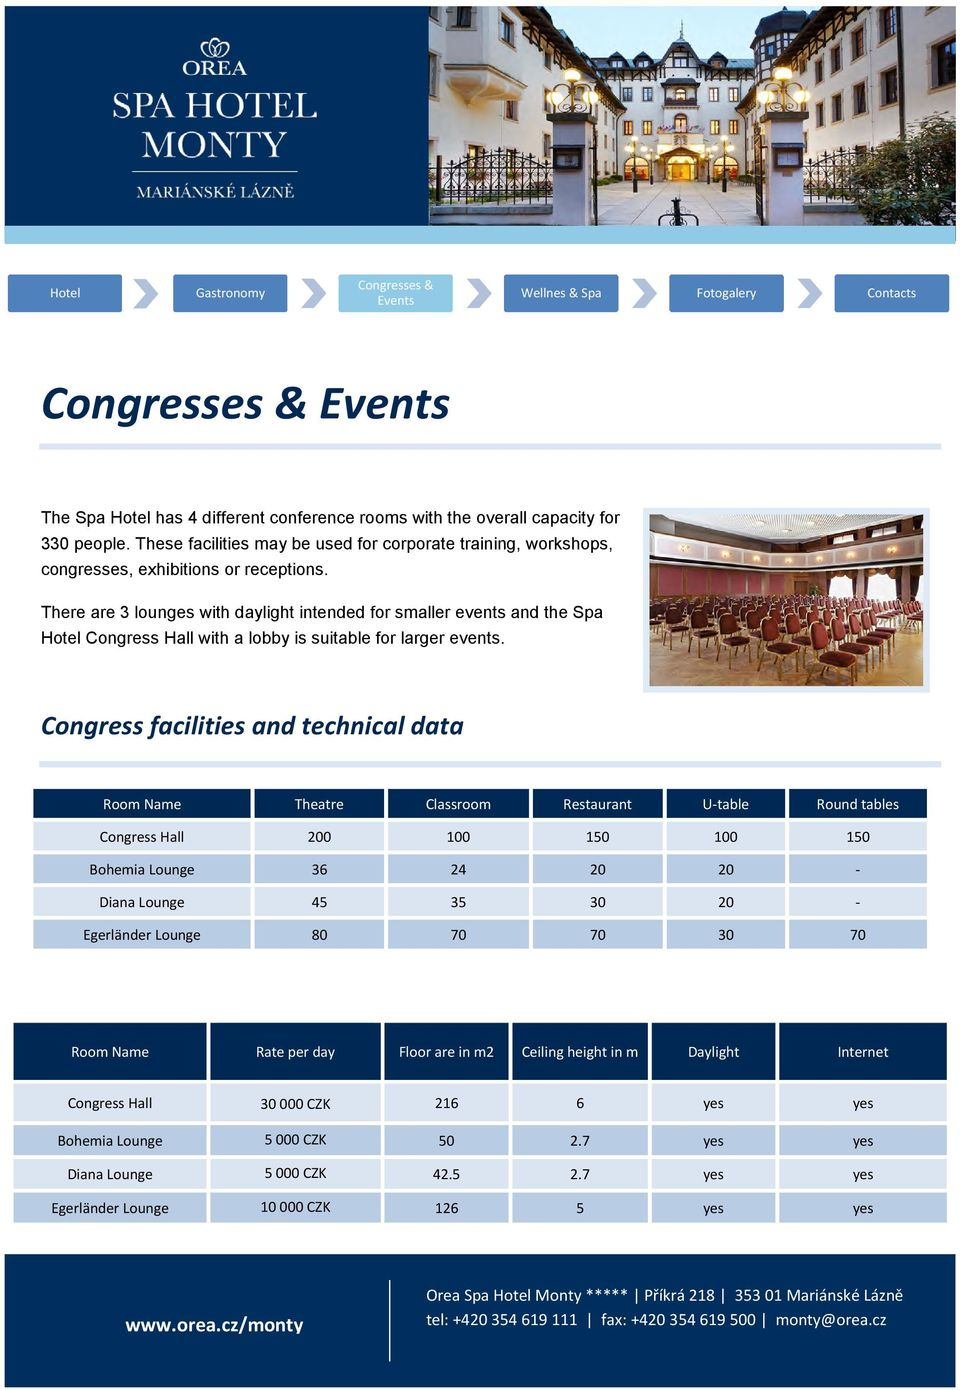 Congress facilities and technical data Room Name Theatre Classroom Restaurant U-table Round tables Congress Hall 200 100 150 100 150 Bohemia Lounge 36 24 20 20 - Diana Lounge 45 35 30 20 -